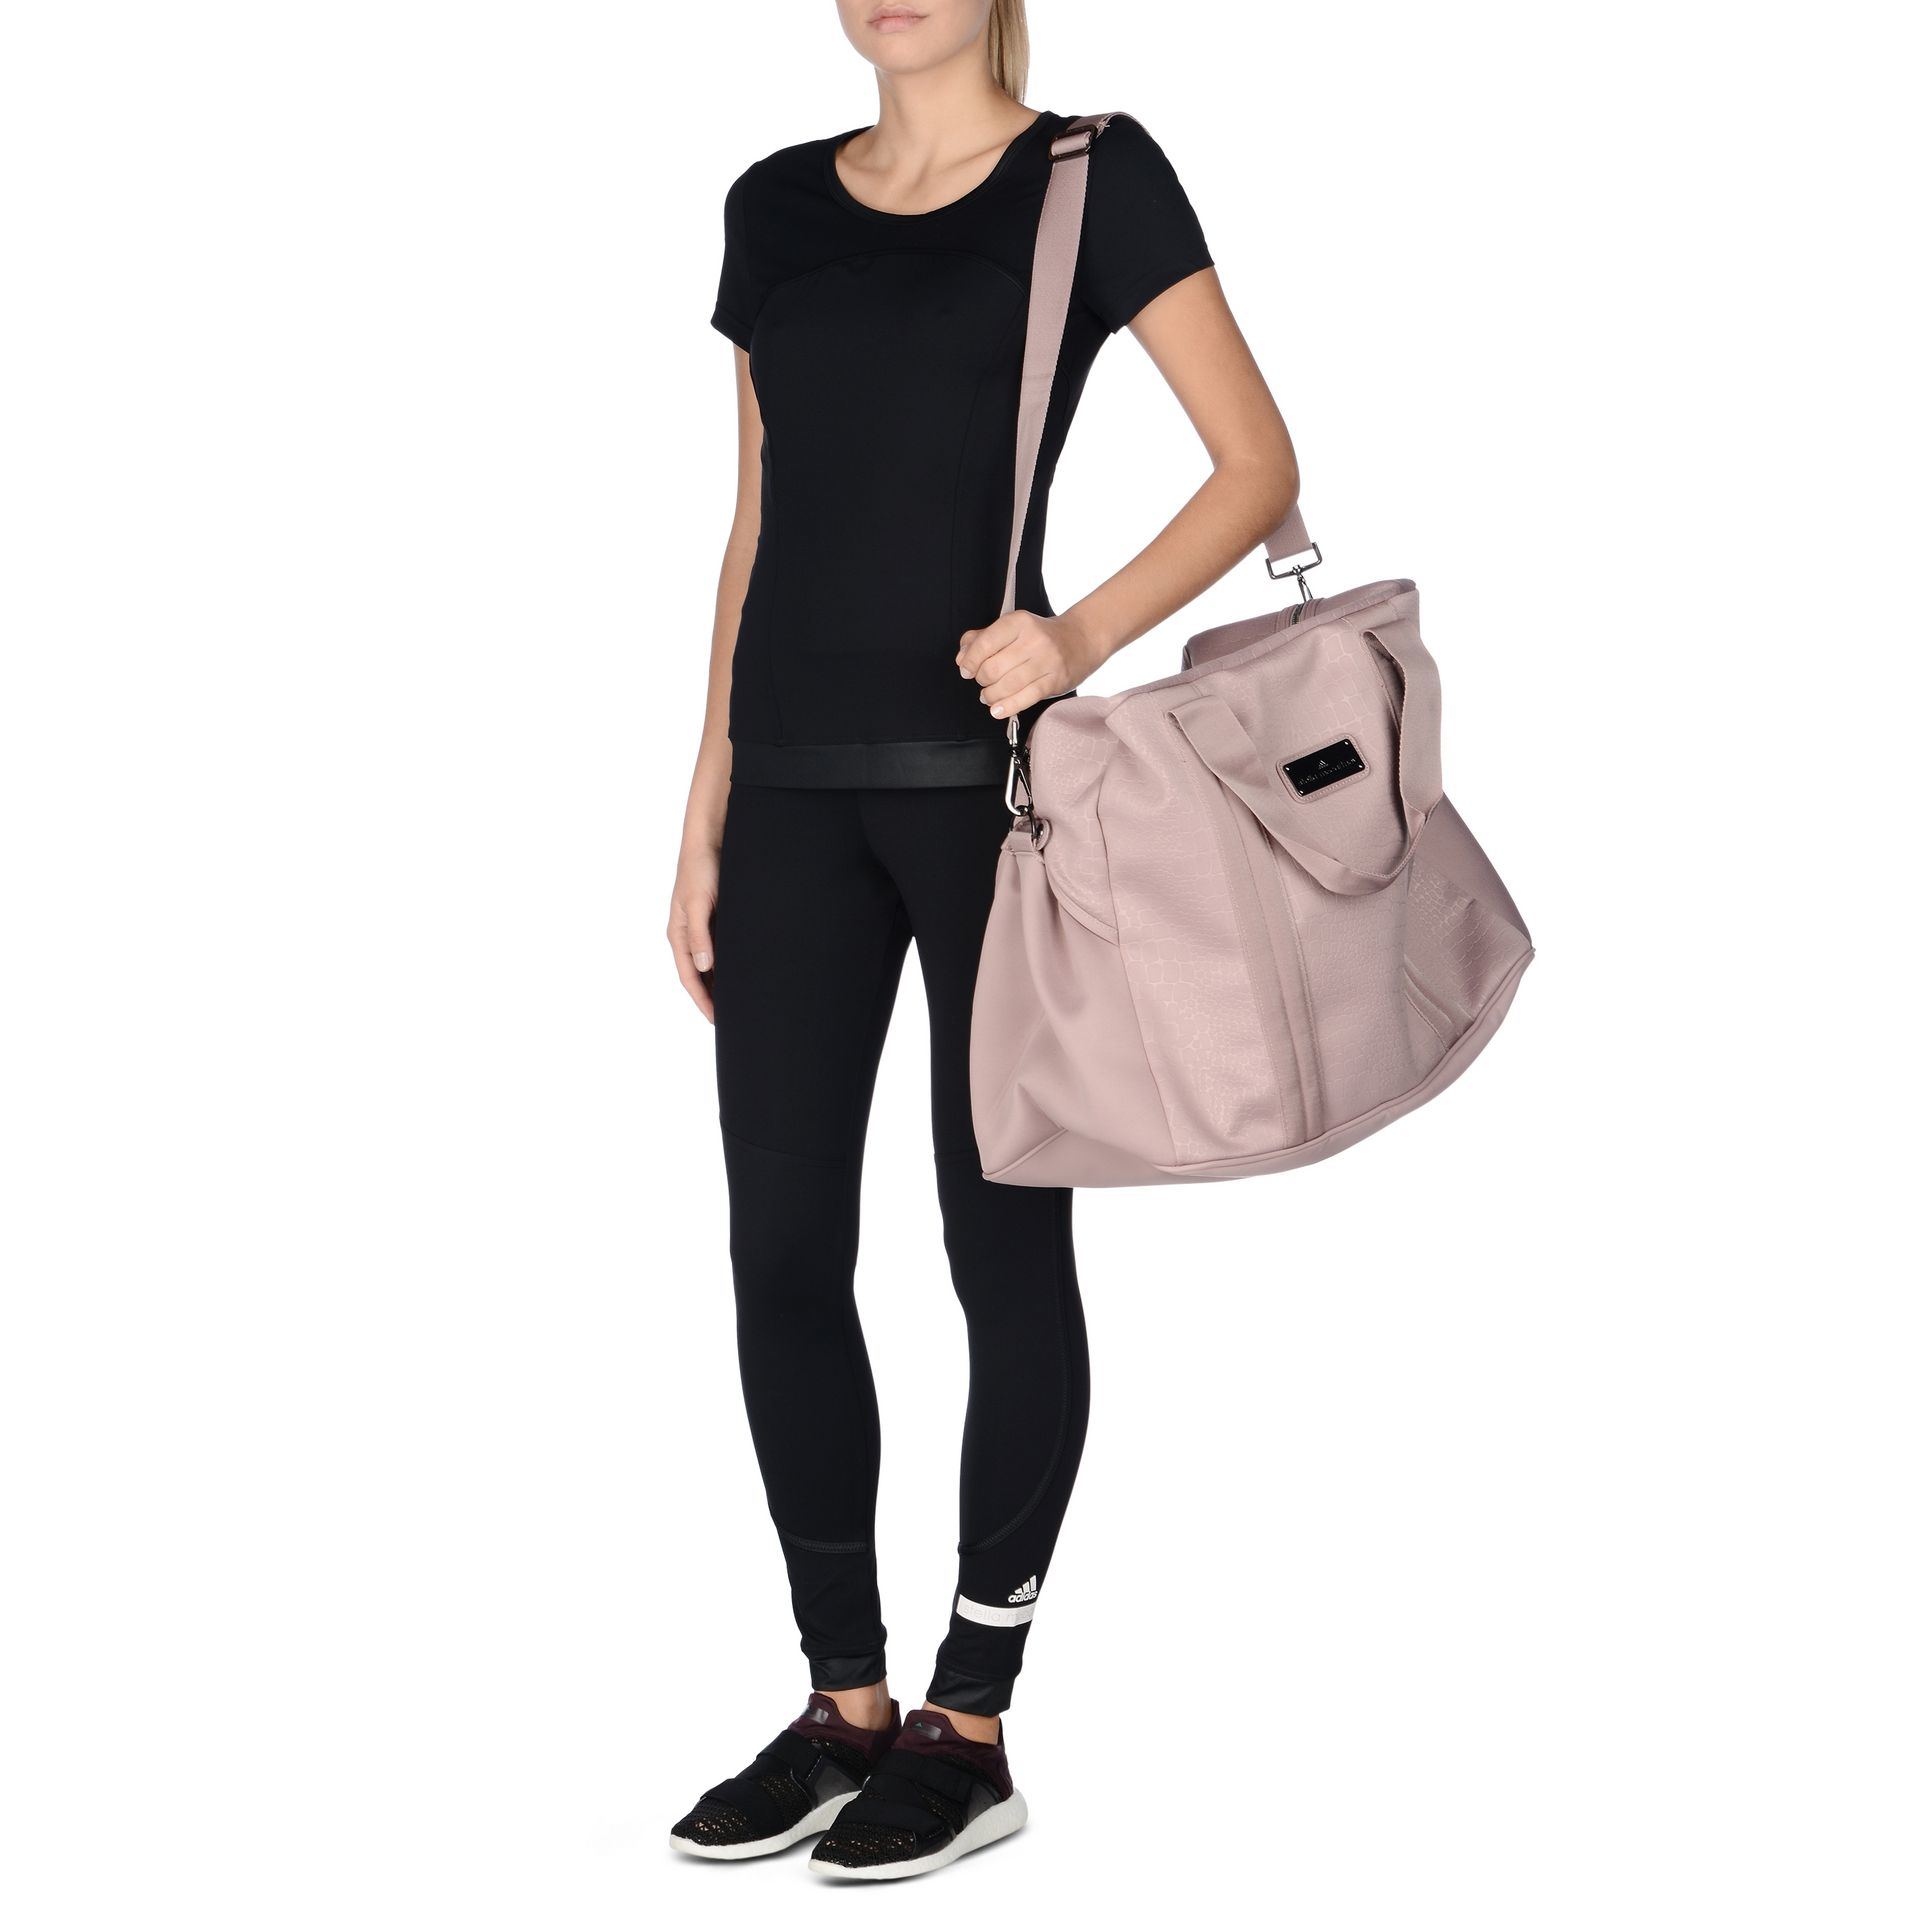 5d31e6c454 Lyst - adidas By Stella McCartney Pink Essentials Sports Bag in Pink